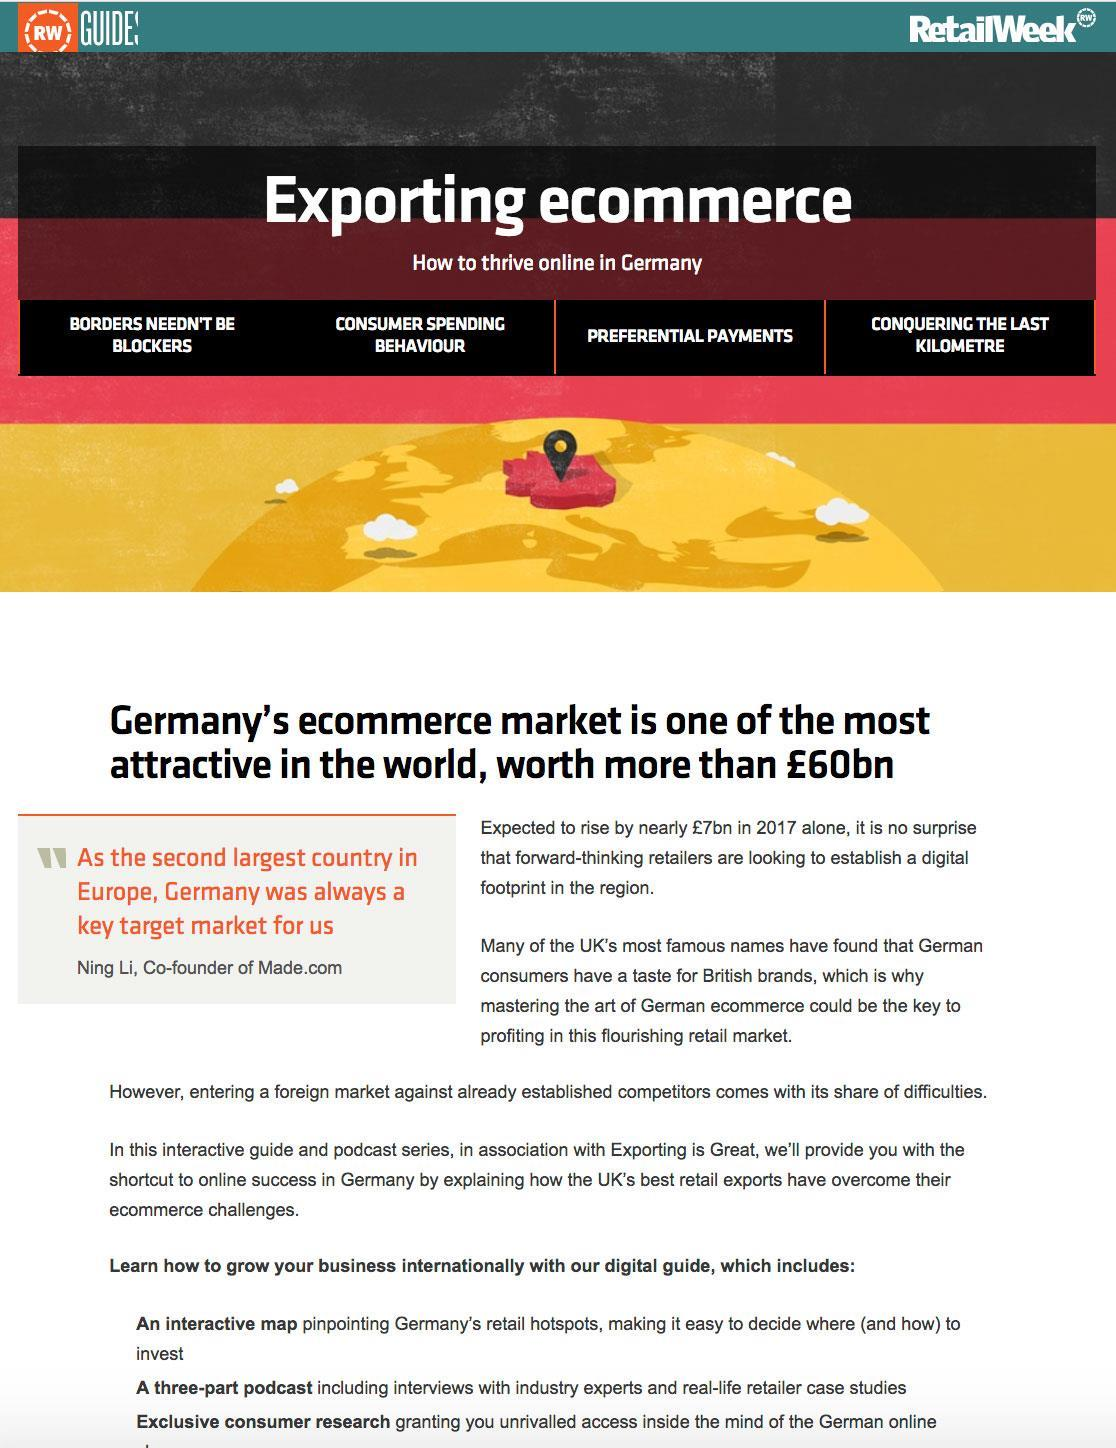 Exporting Ecommerce – How to Thrive Online in Germany